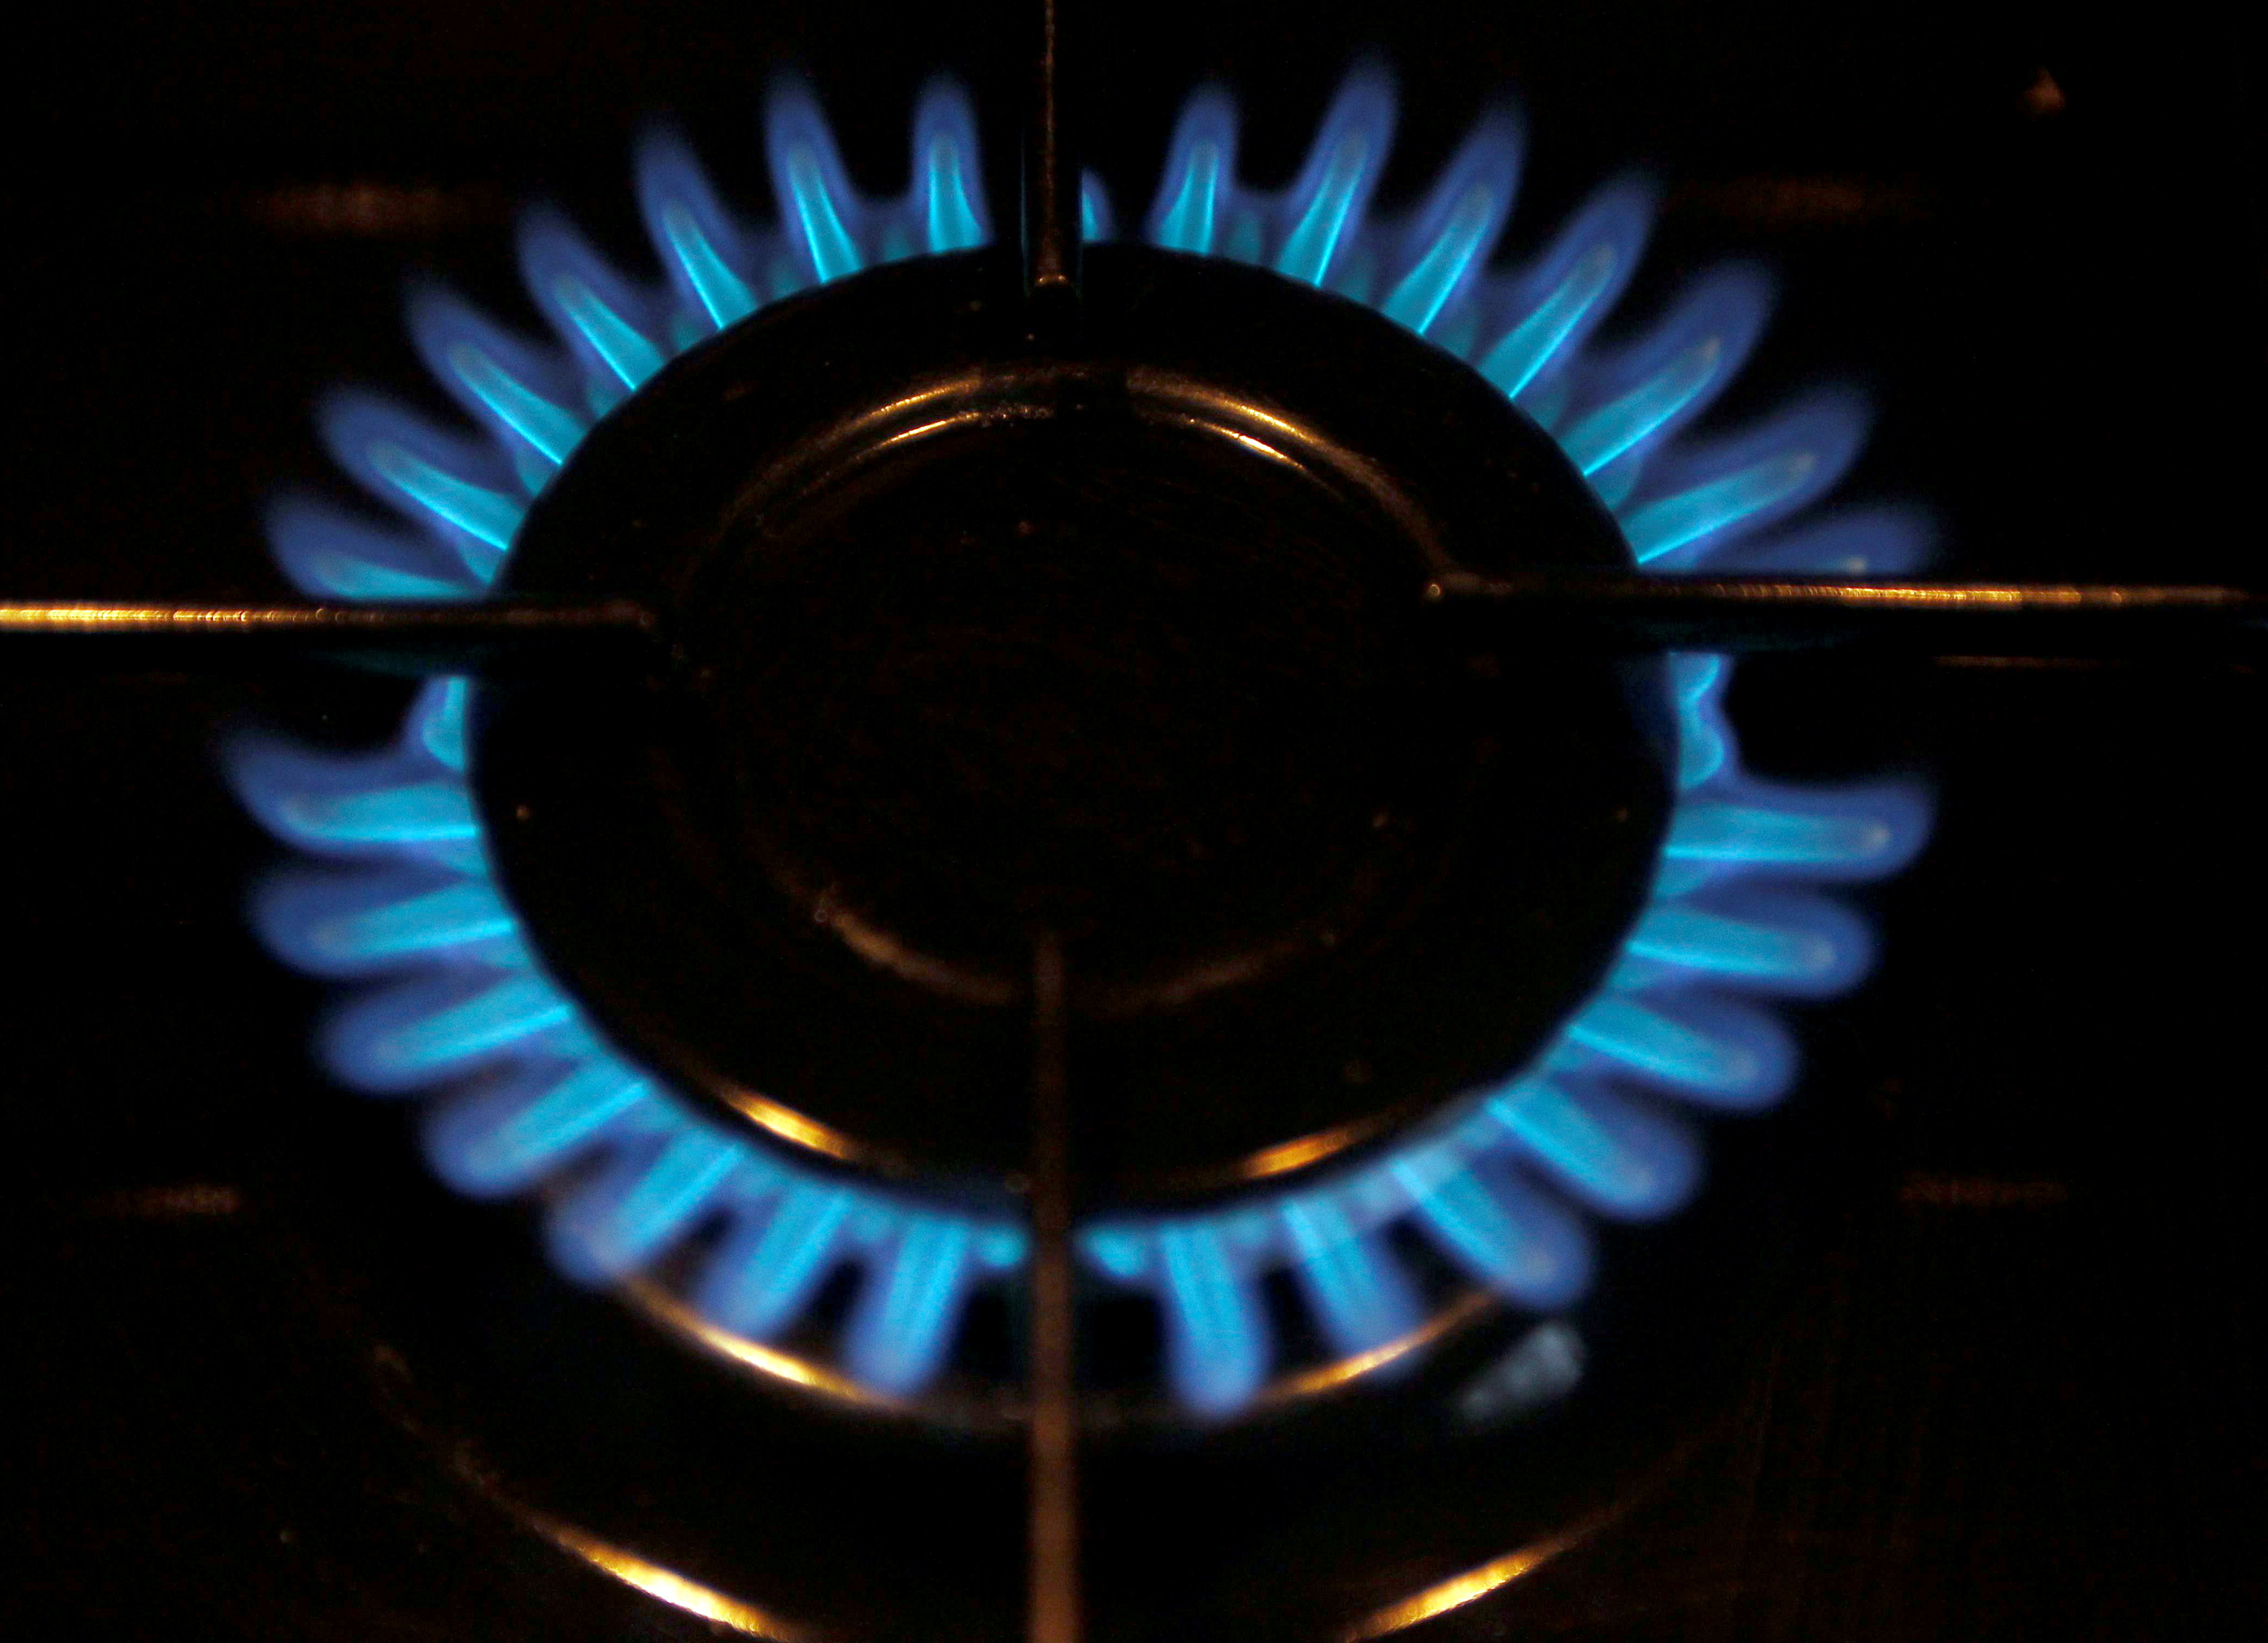 A gas burner is pictured on a cooker in a private home in Bordeaux, soutwestern France, December 13, 2012. REUTERS/Regis Duvignau